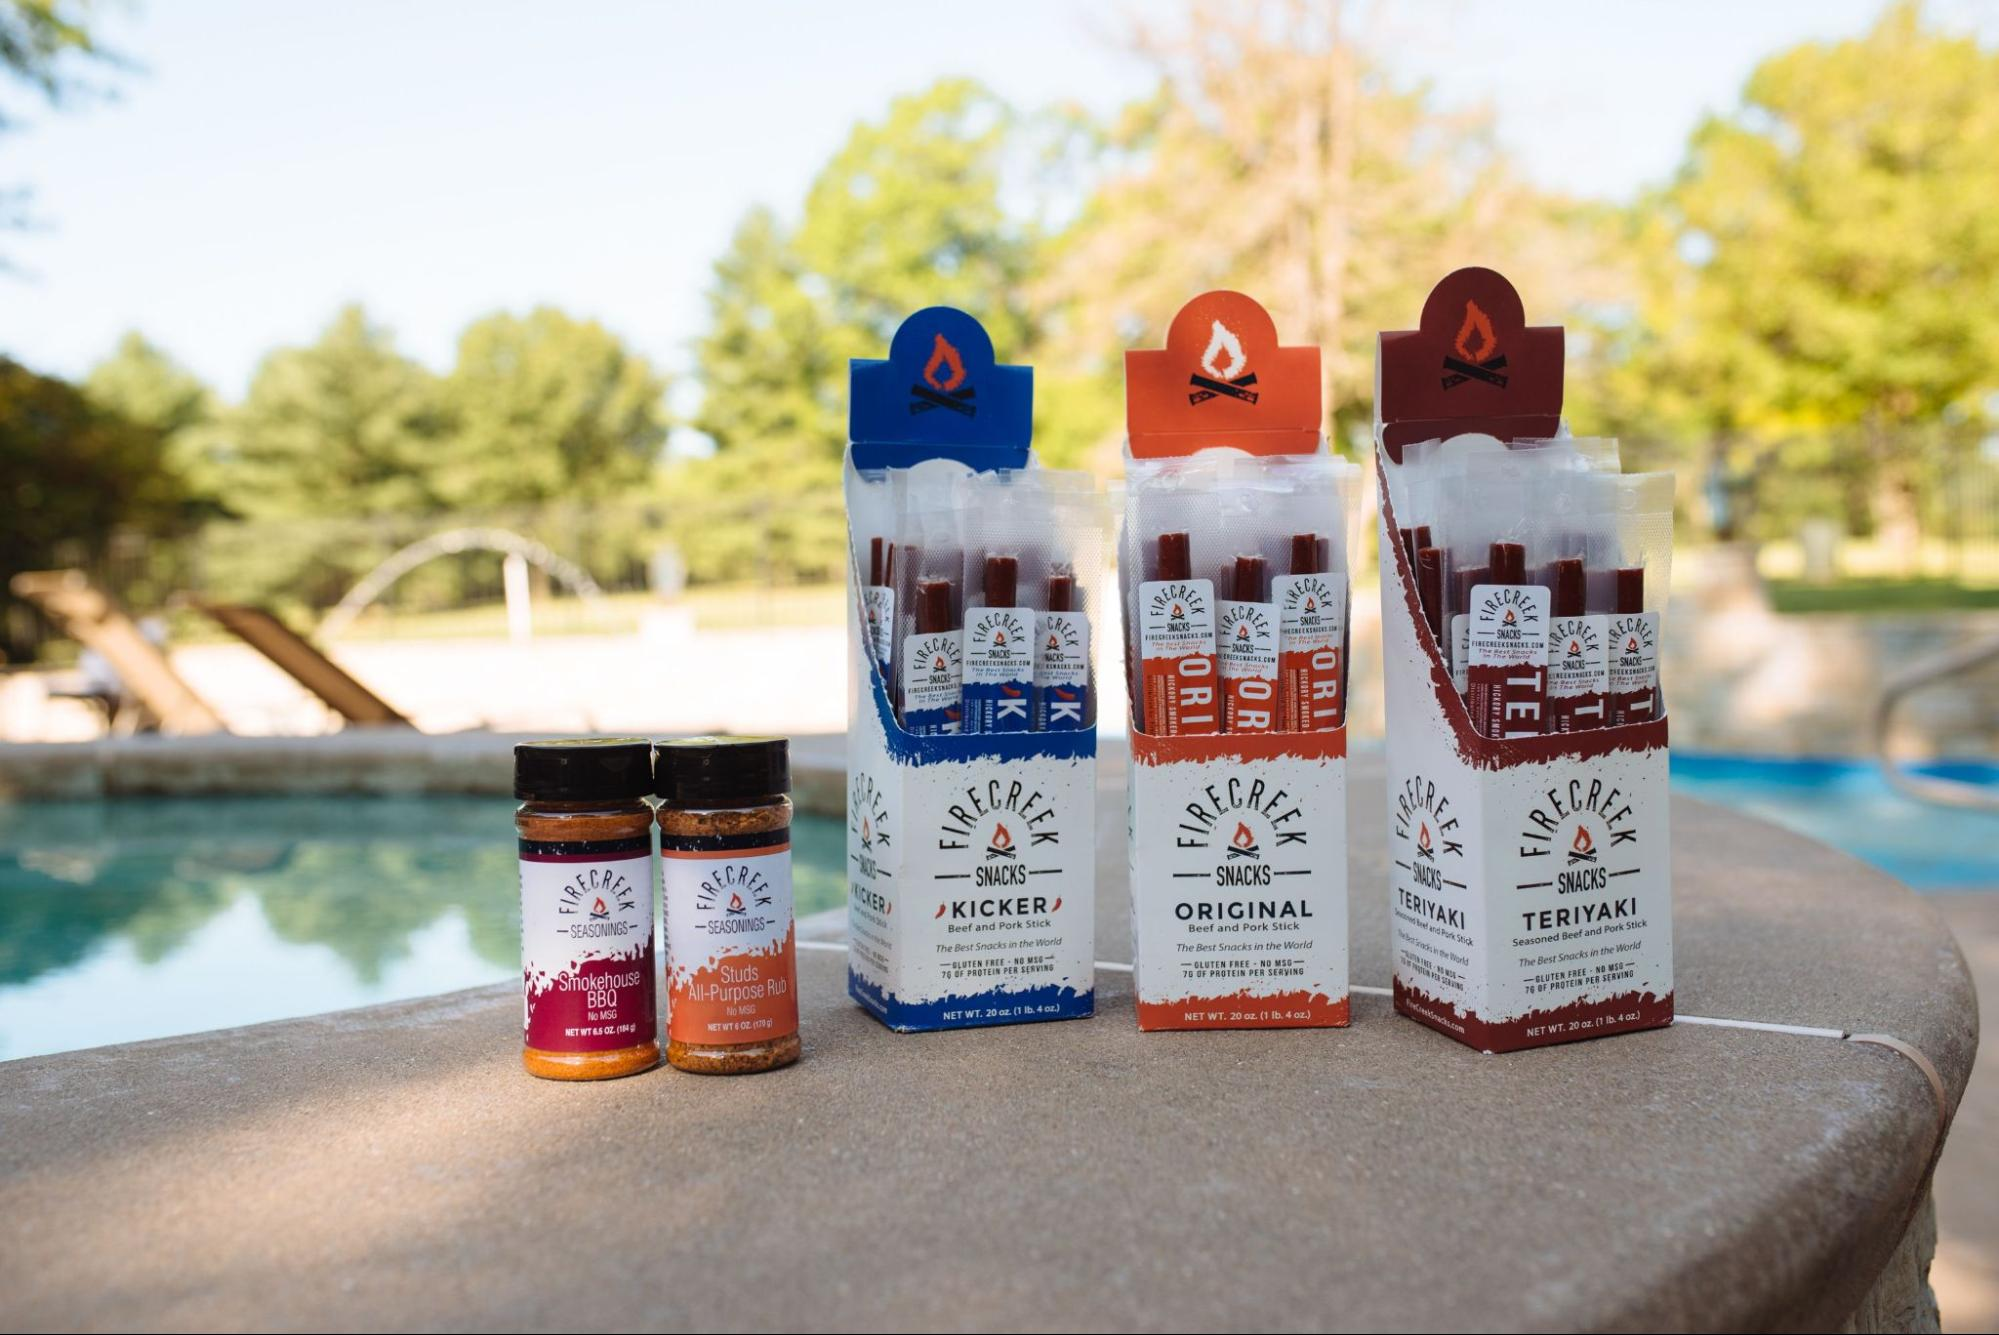 A selection of seasonings and jerky from FireCreek Snacks backdropped by a pool setting.